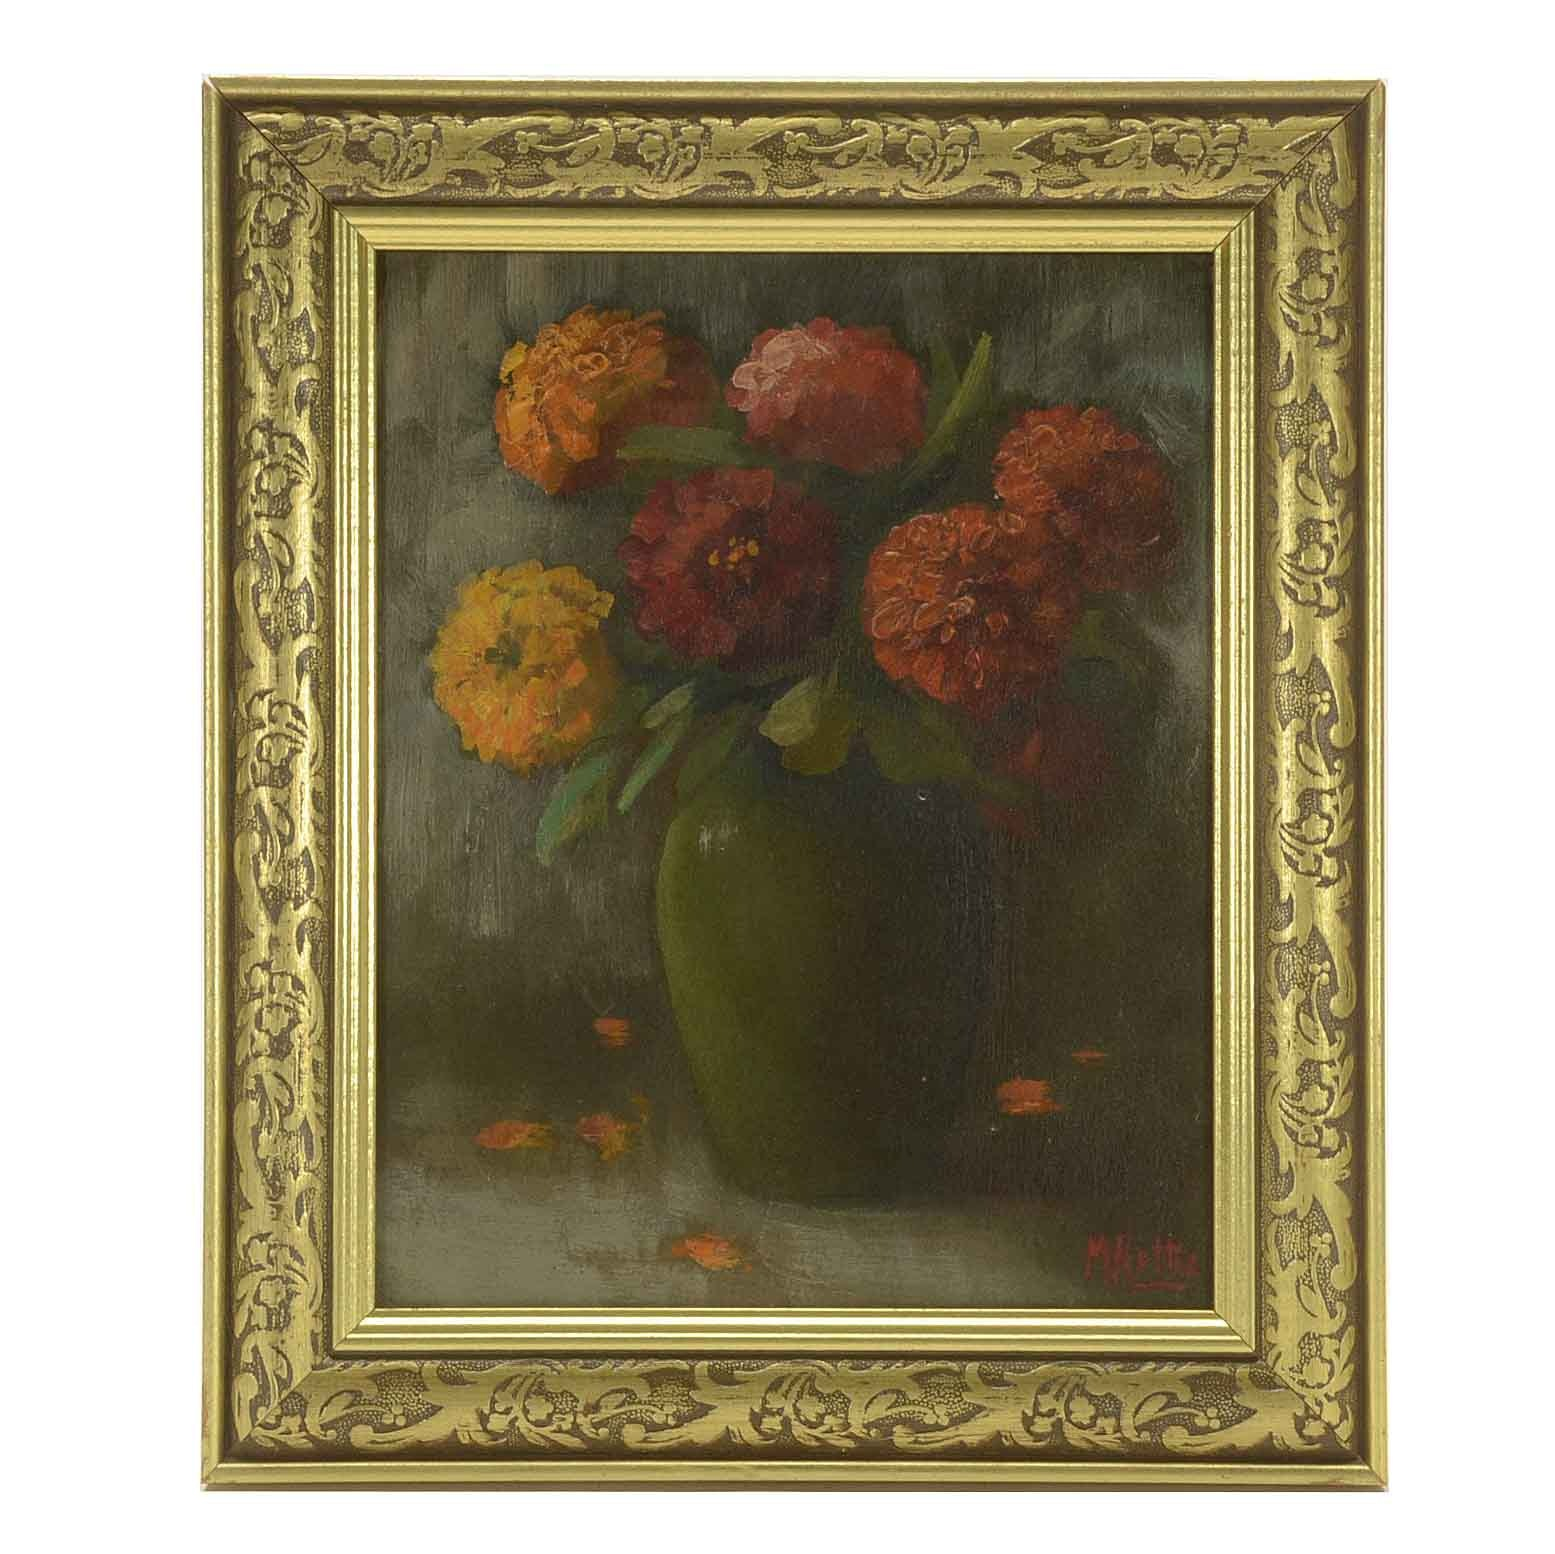 Martin Rettig Signed Oil Painting of a Still Life with Flowers